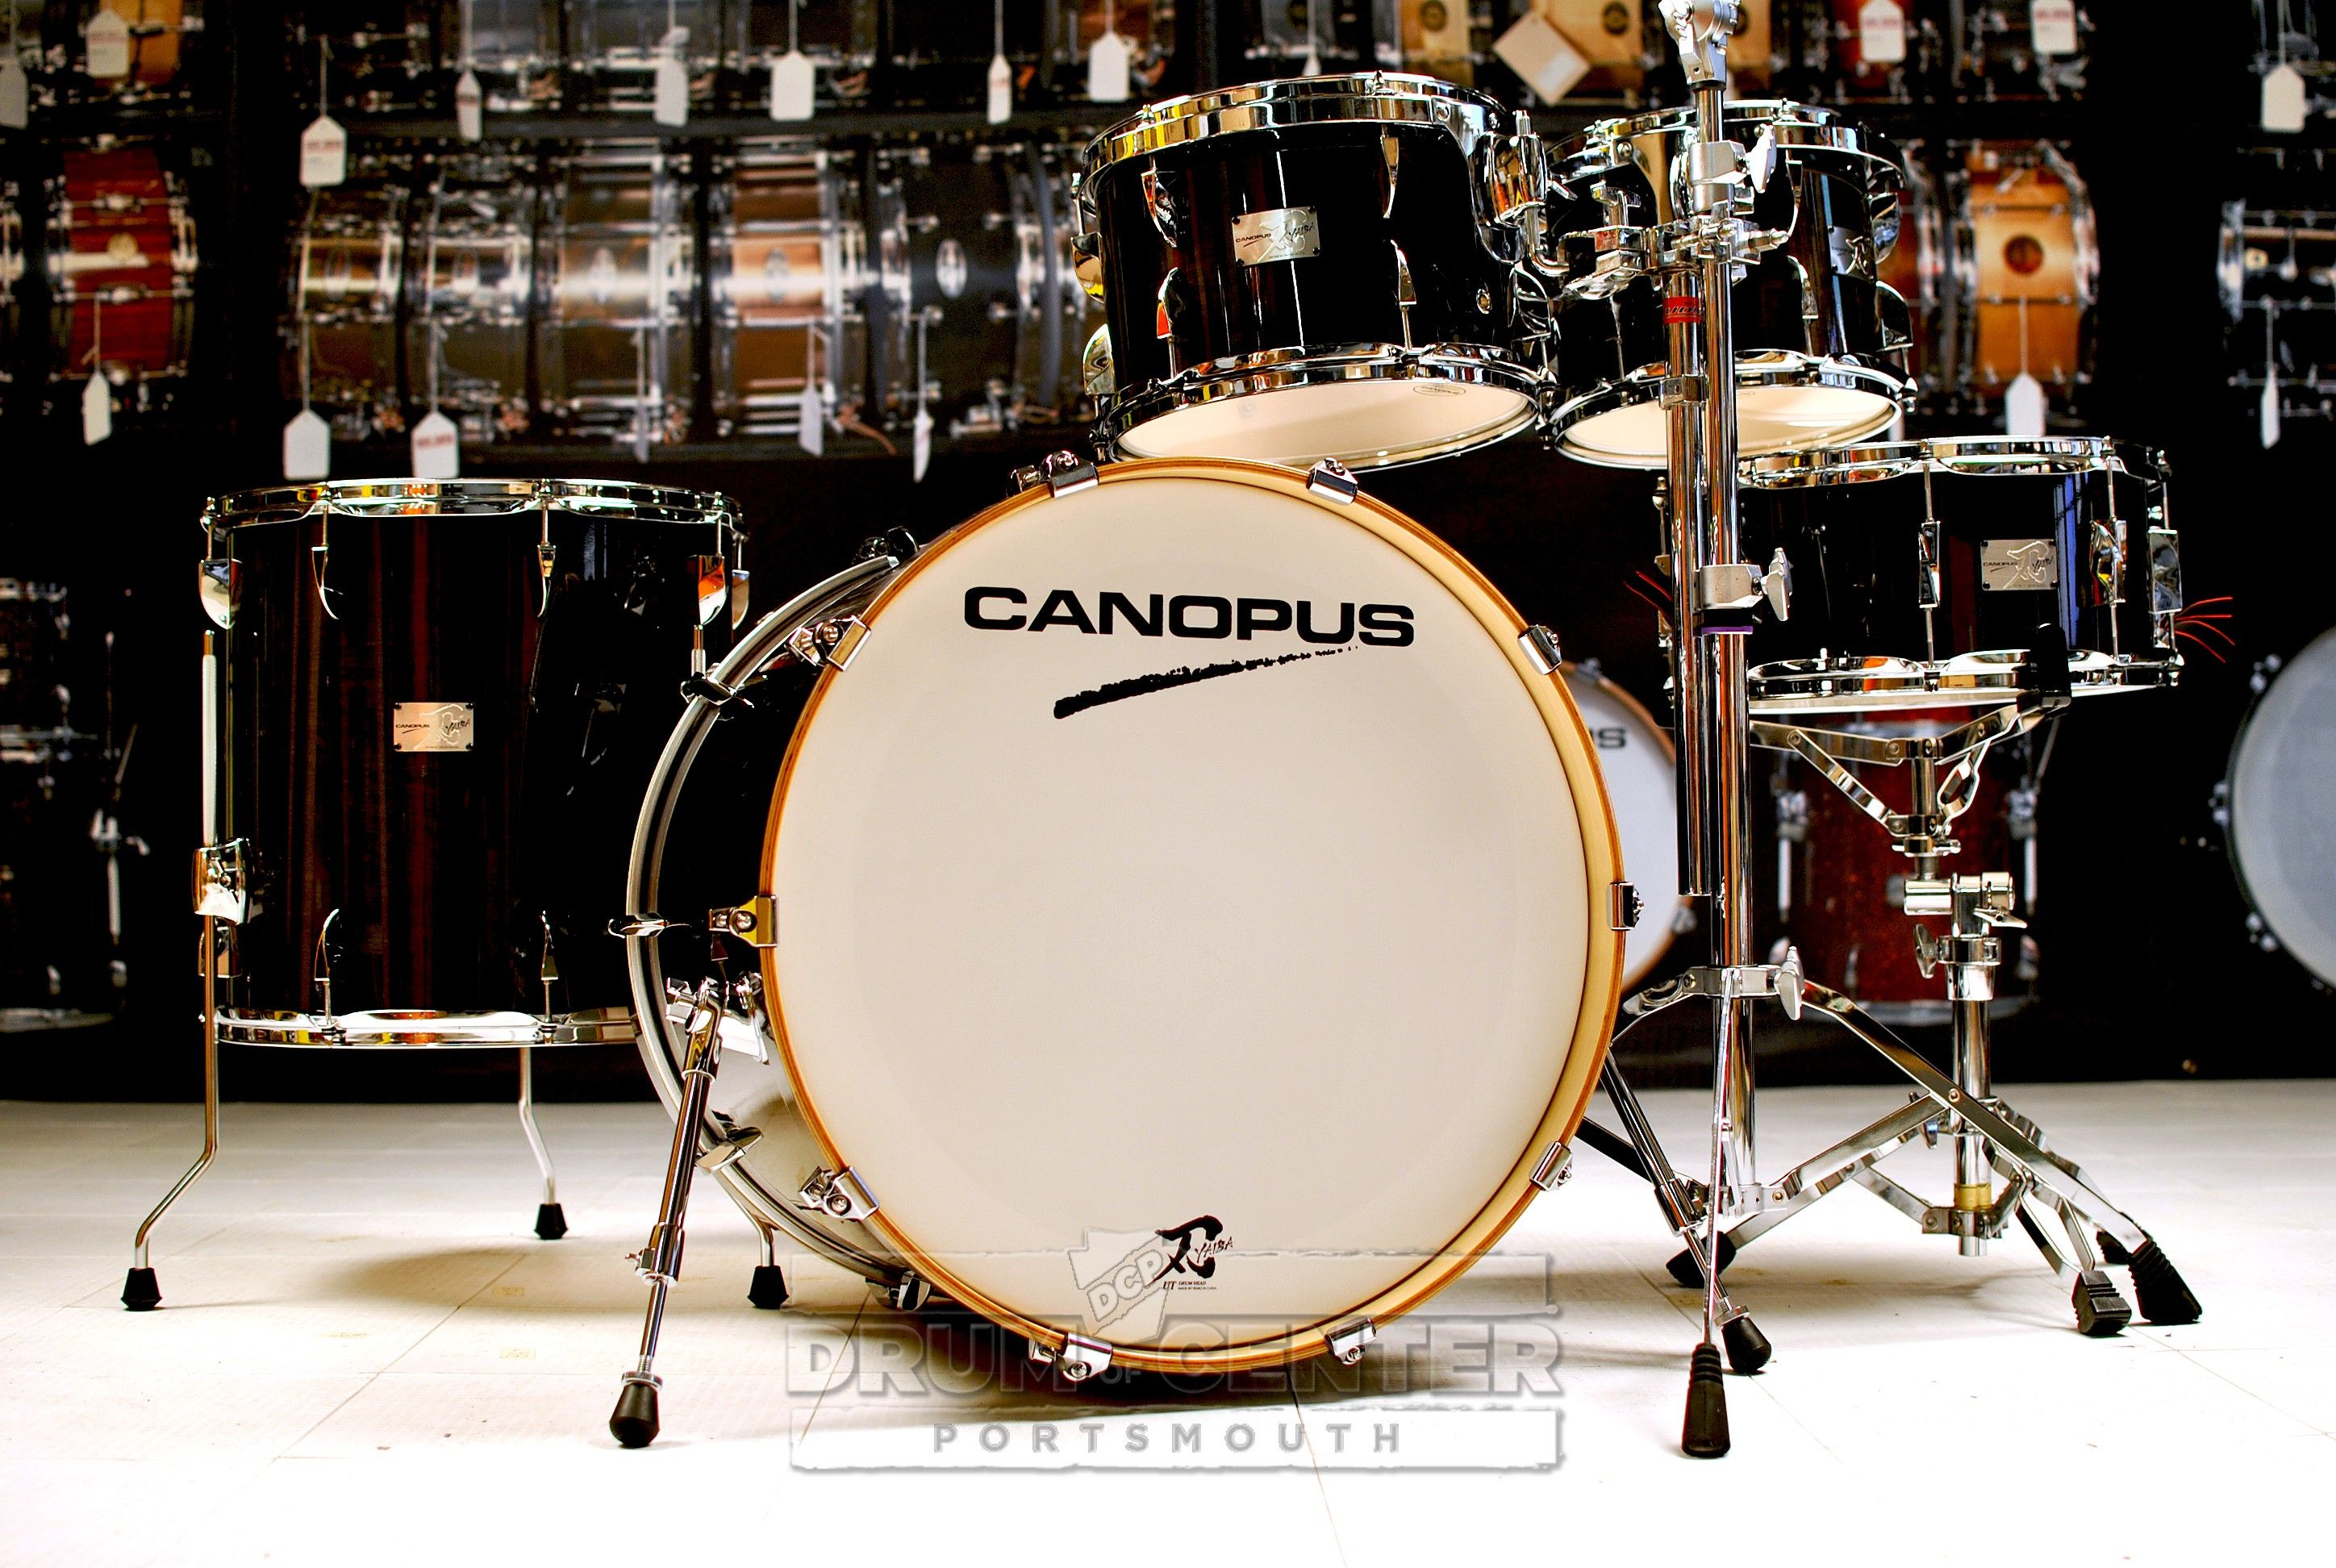 "Canopus Yaiba 5pc Groove Drum Set Ebony Lacquer  The NEW YAIBA models have inherited the great Canopus sound and have also specialized and refined the concept of the original YAIBA - but they sit in a much more affordable price range. This is a ""dream come true"" for those drummers who have always wanted to easily have the Canopus sound. Purchase Here: http://www.drumcenternh.com/canopus-yaiba-5pc-groove-drum-set-ebony-lacquer.html"